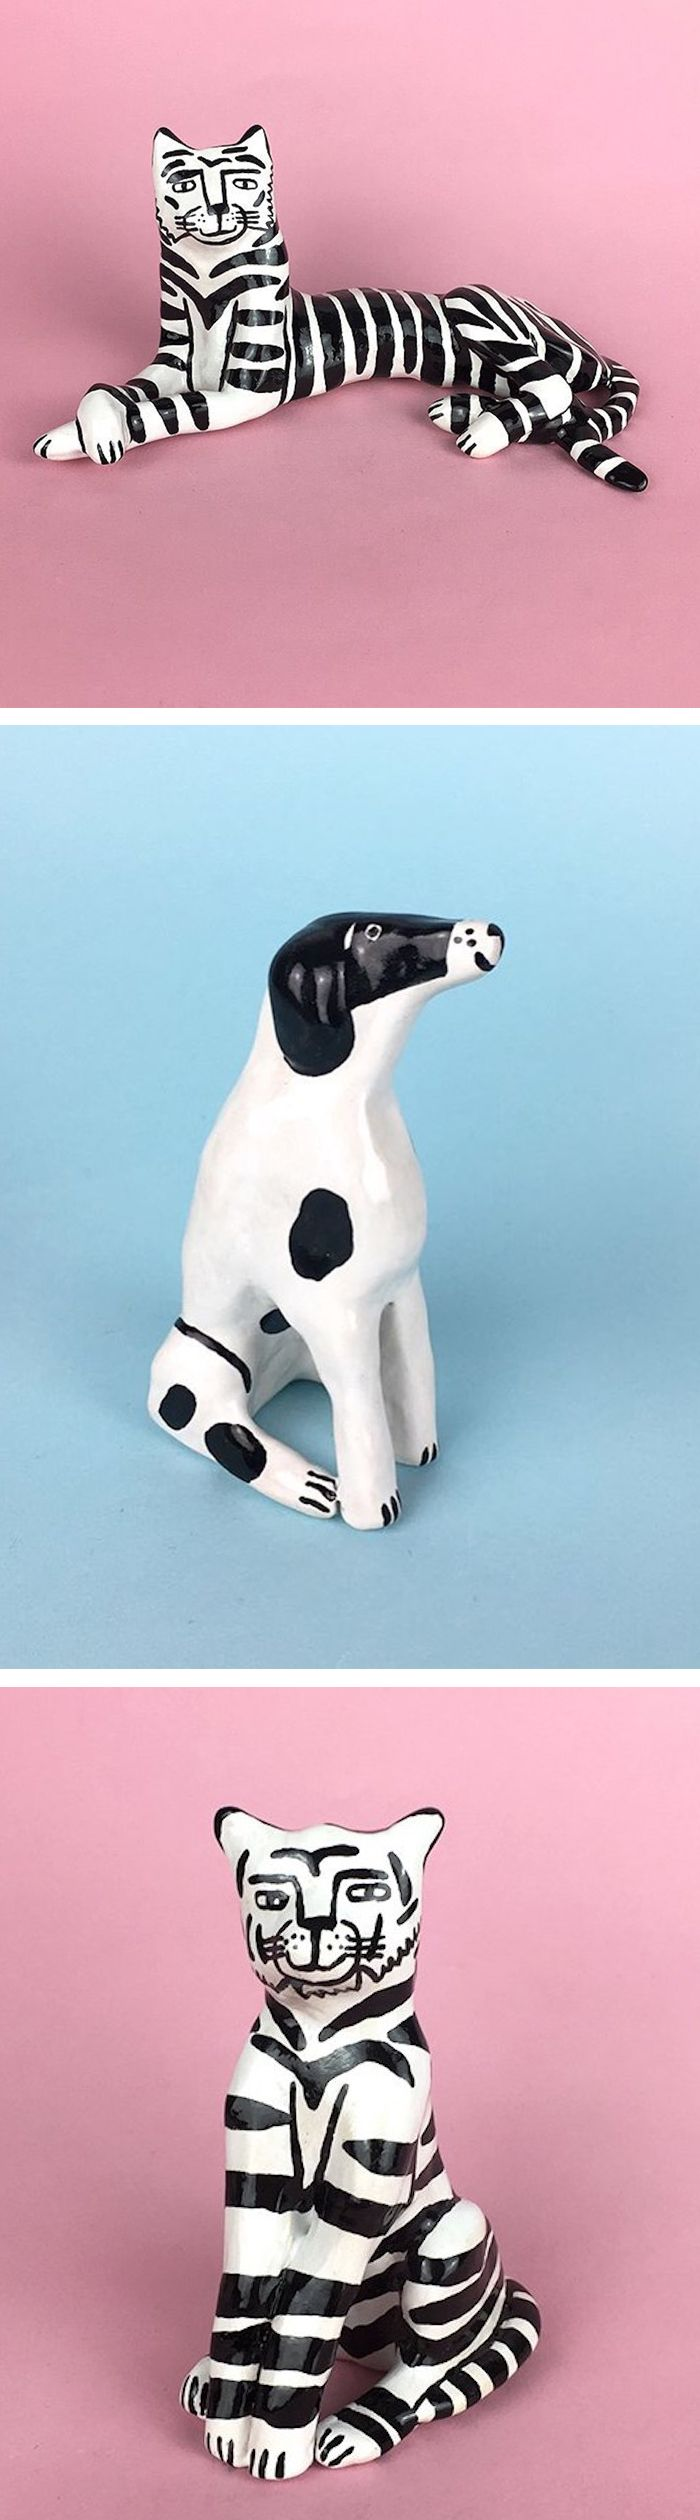 Black and white ceramics by Lucy Kirk #opticalillusion #ceramics #ceramicfigures